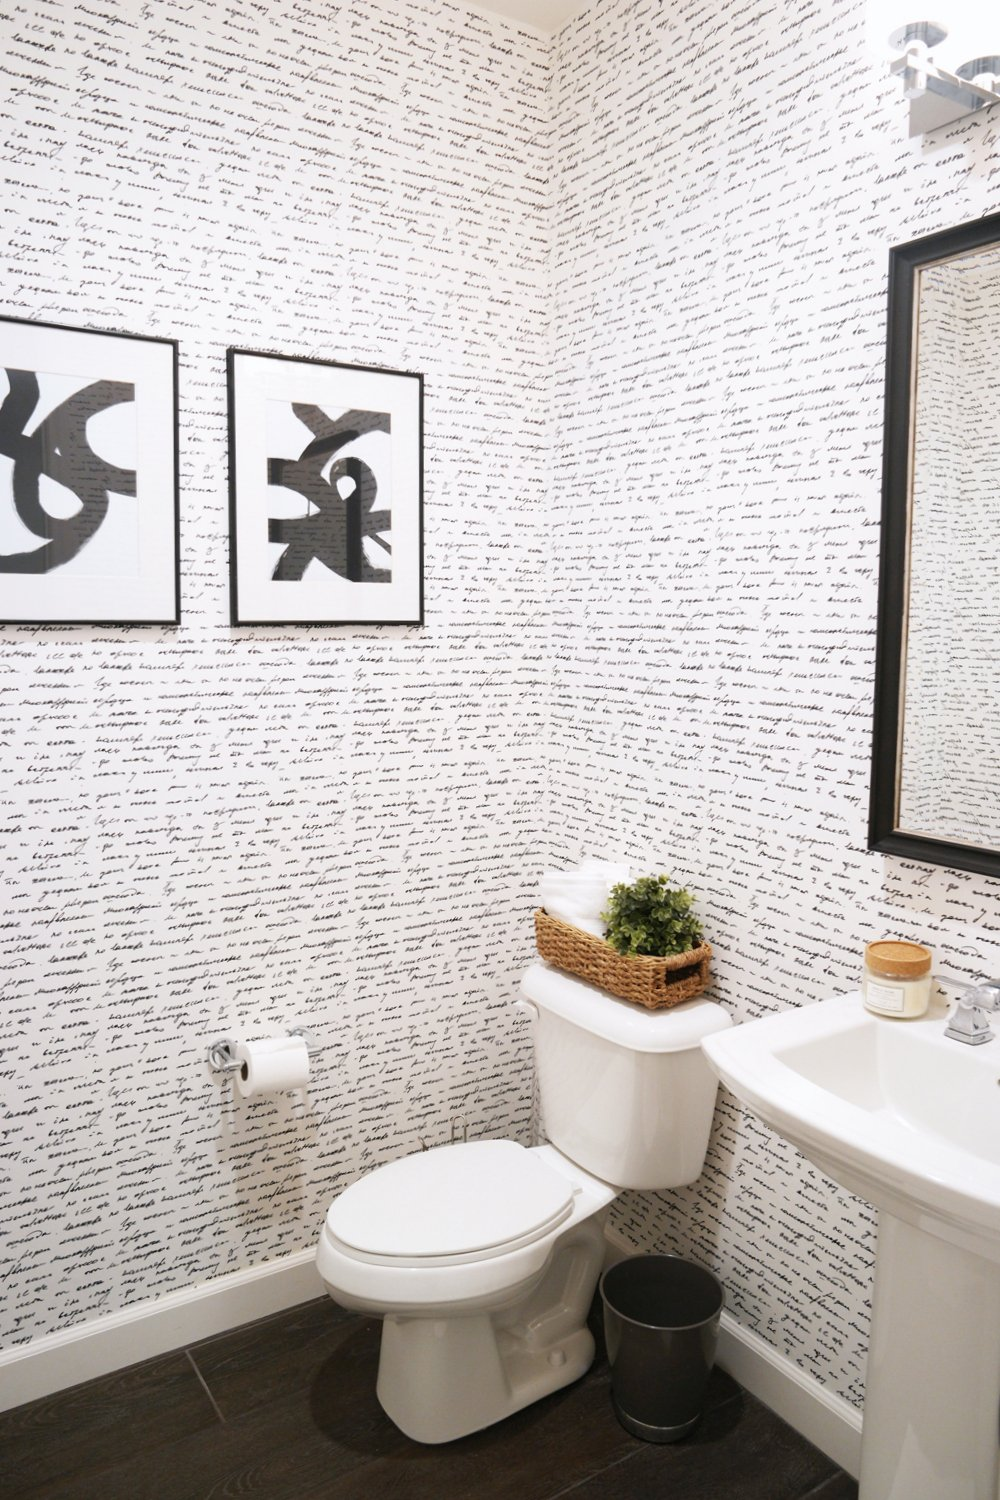 Merrick's Art Powder Bathroom Walls Need Love Wallpaper